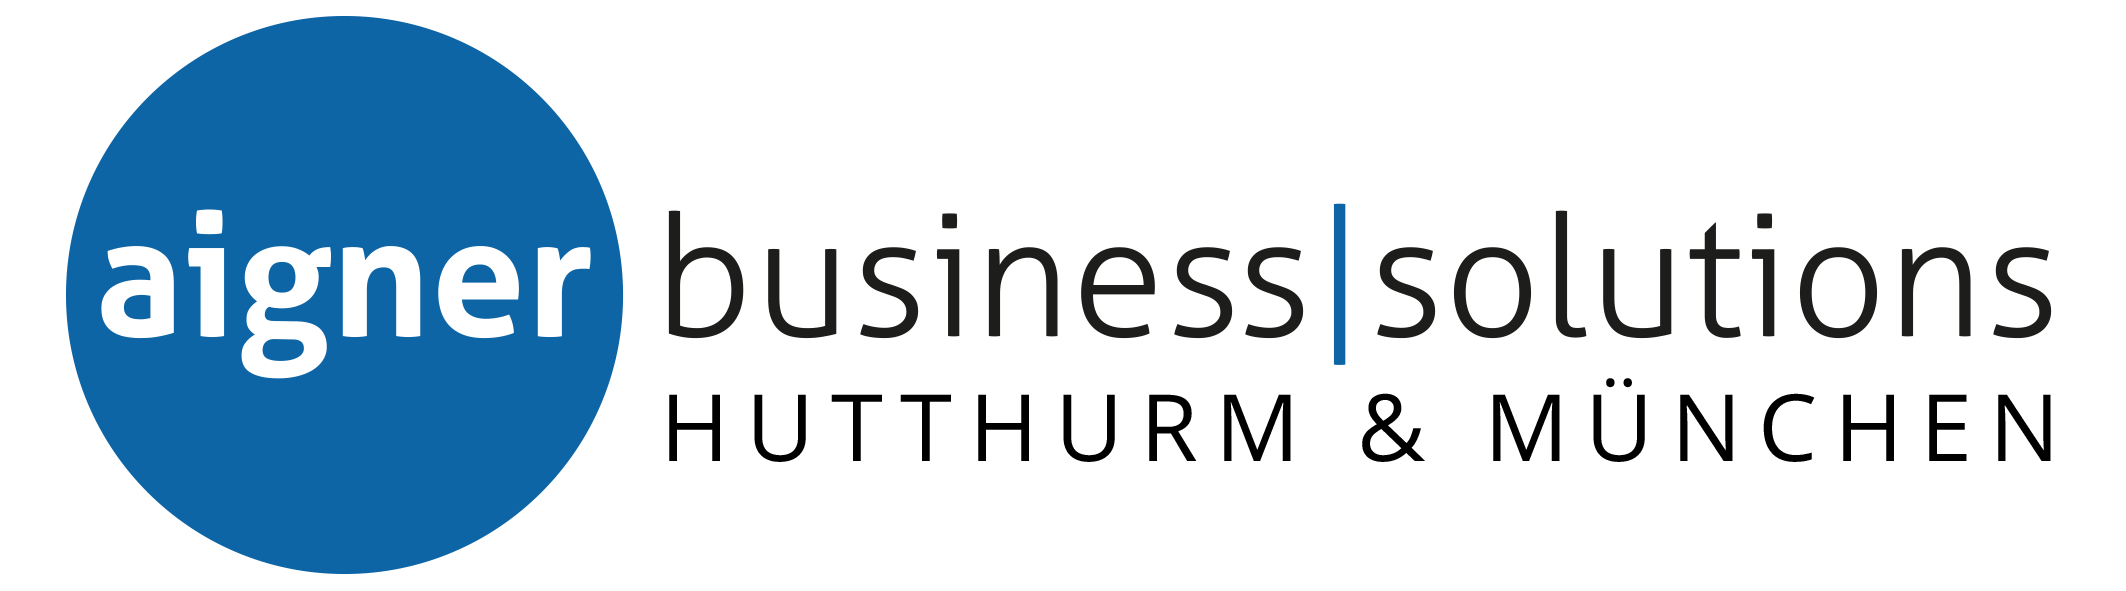 aigner business solutions GmbH